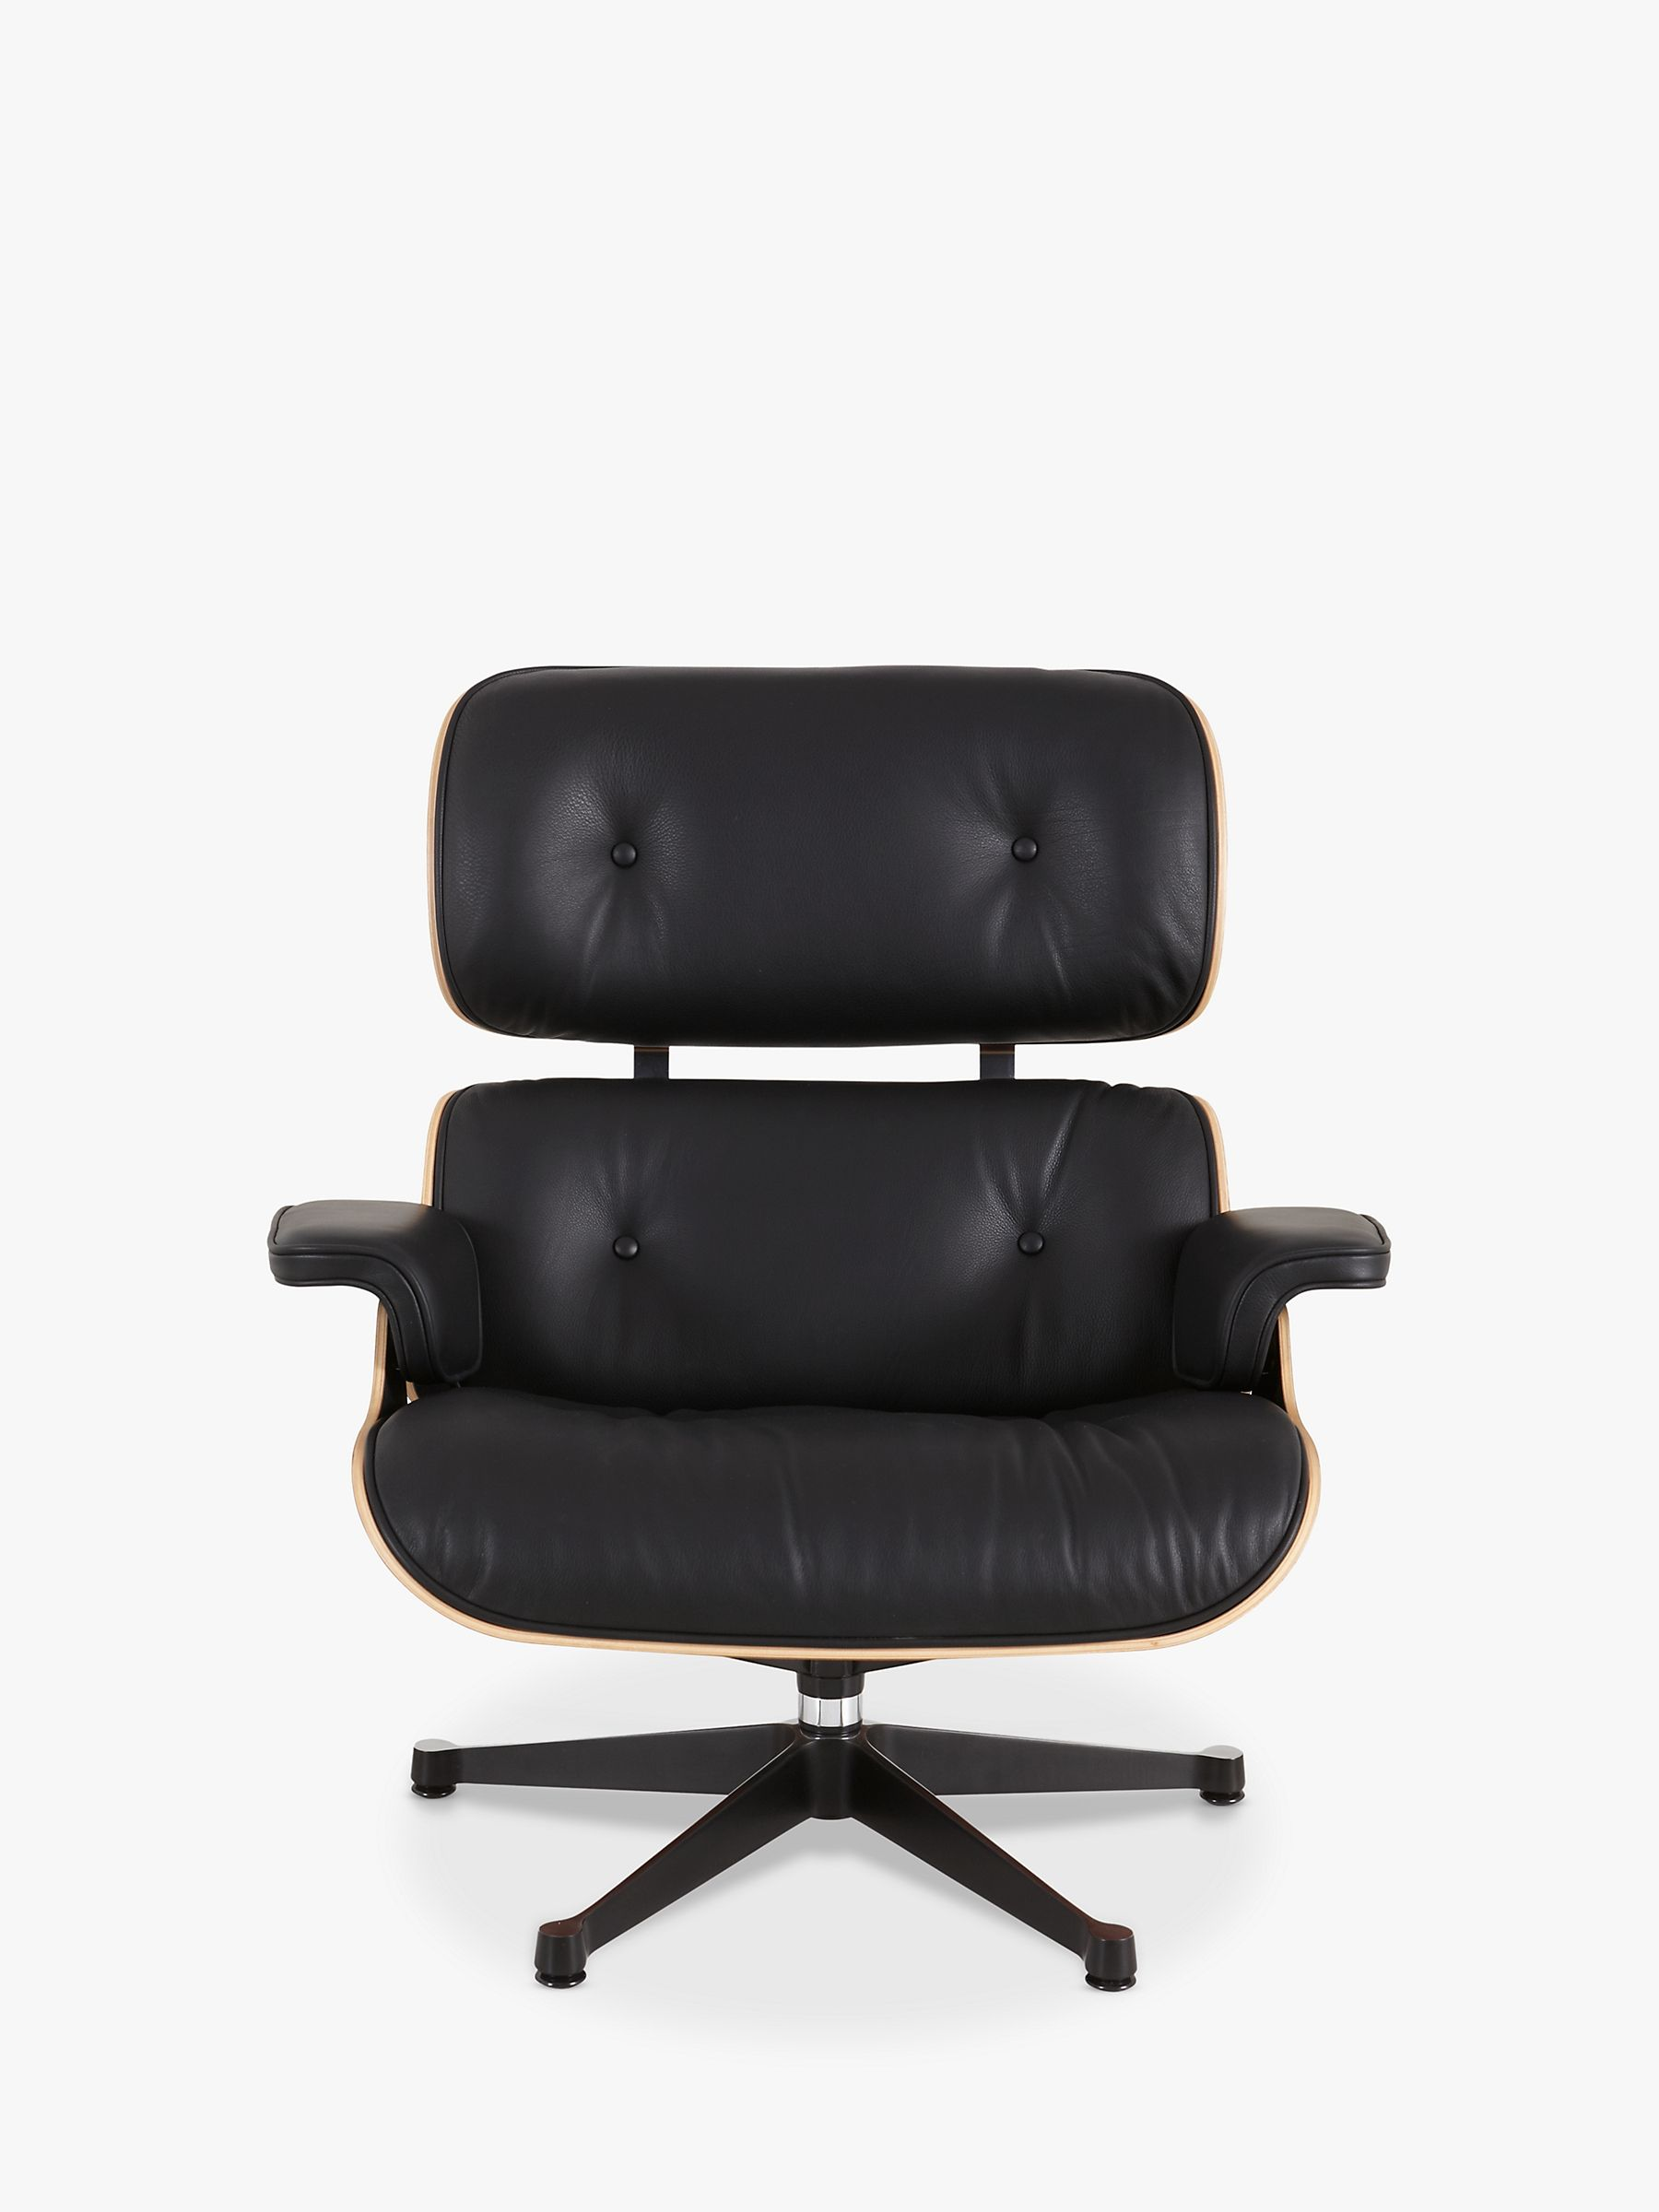 Vitra Eames Lounge Chair Black Vitra Eames Large Leather Lounge Chair And Ottoman Black Palisander